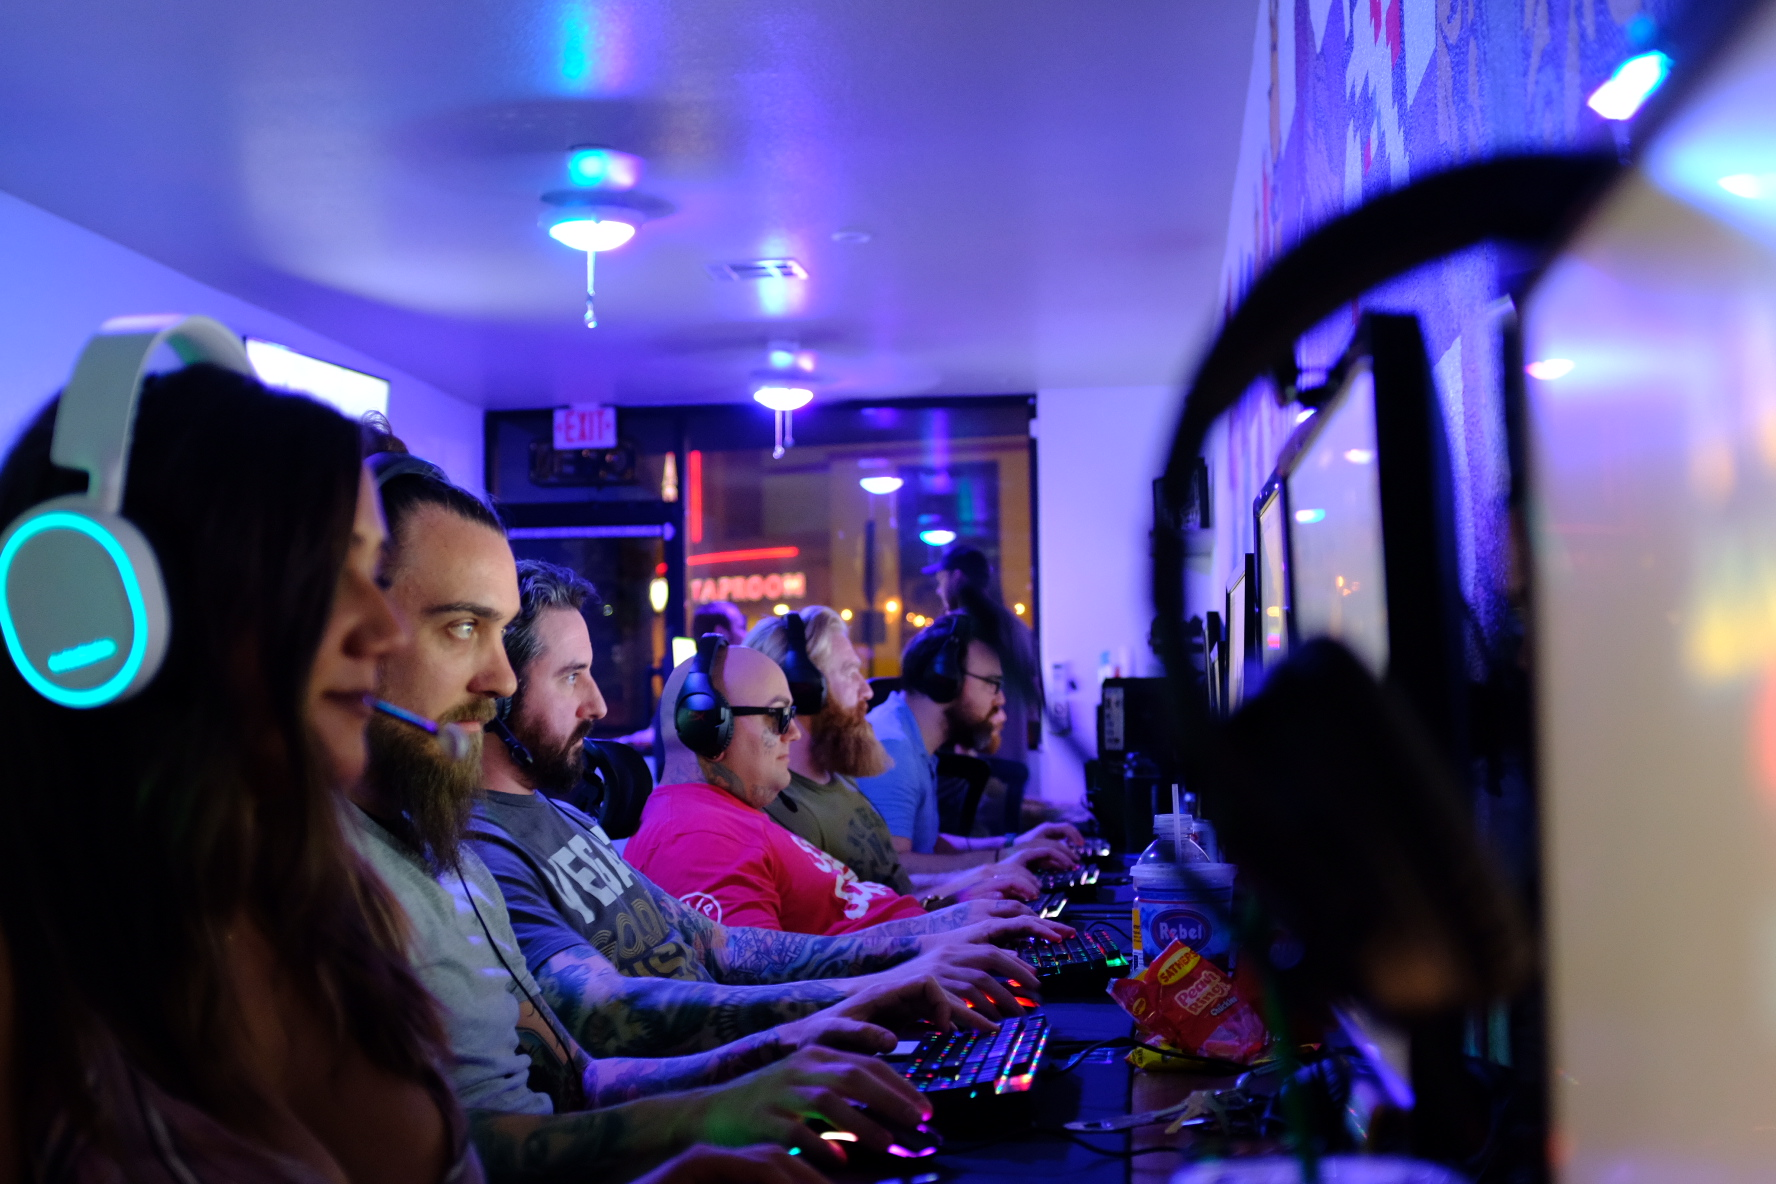 THE LAS VEGAS VALLEY'S NEWEST PC GAMING CENTER